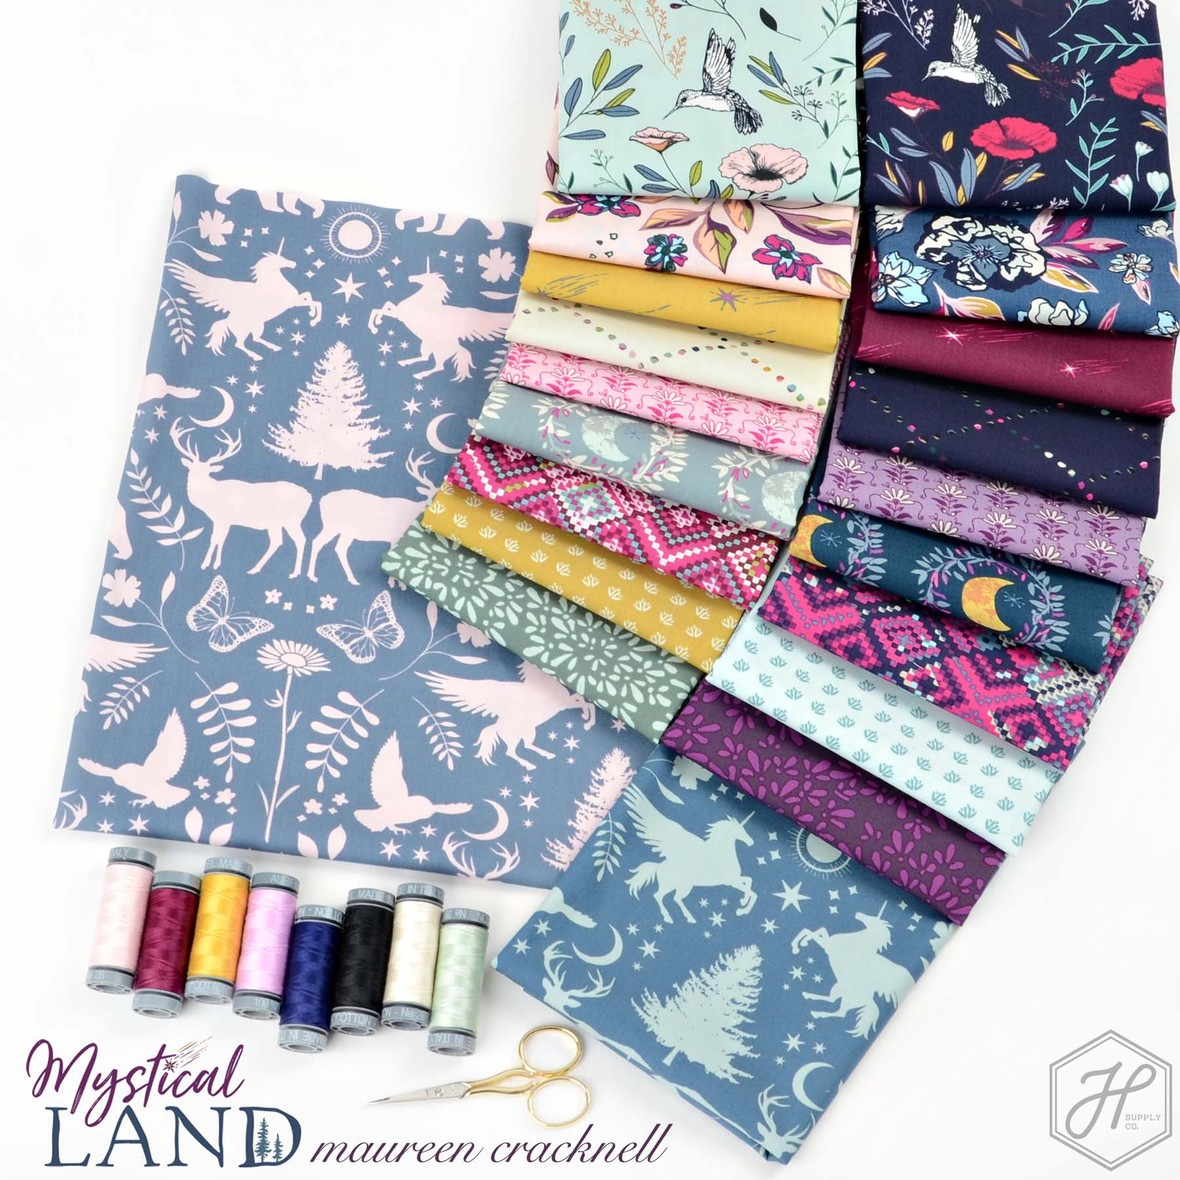 Mystical Land Fabric Poster Mauren Cracknell at Hawthorne Supply Co